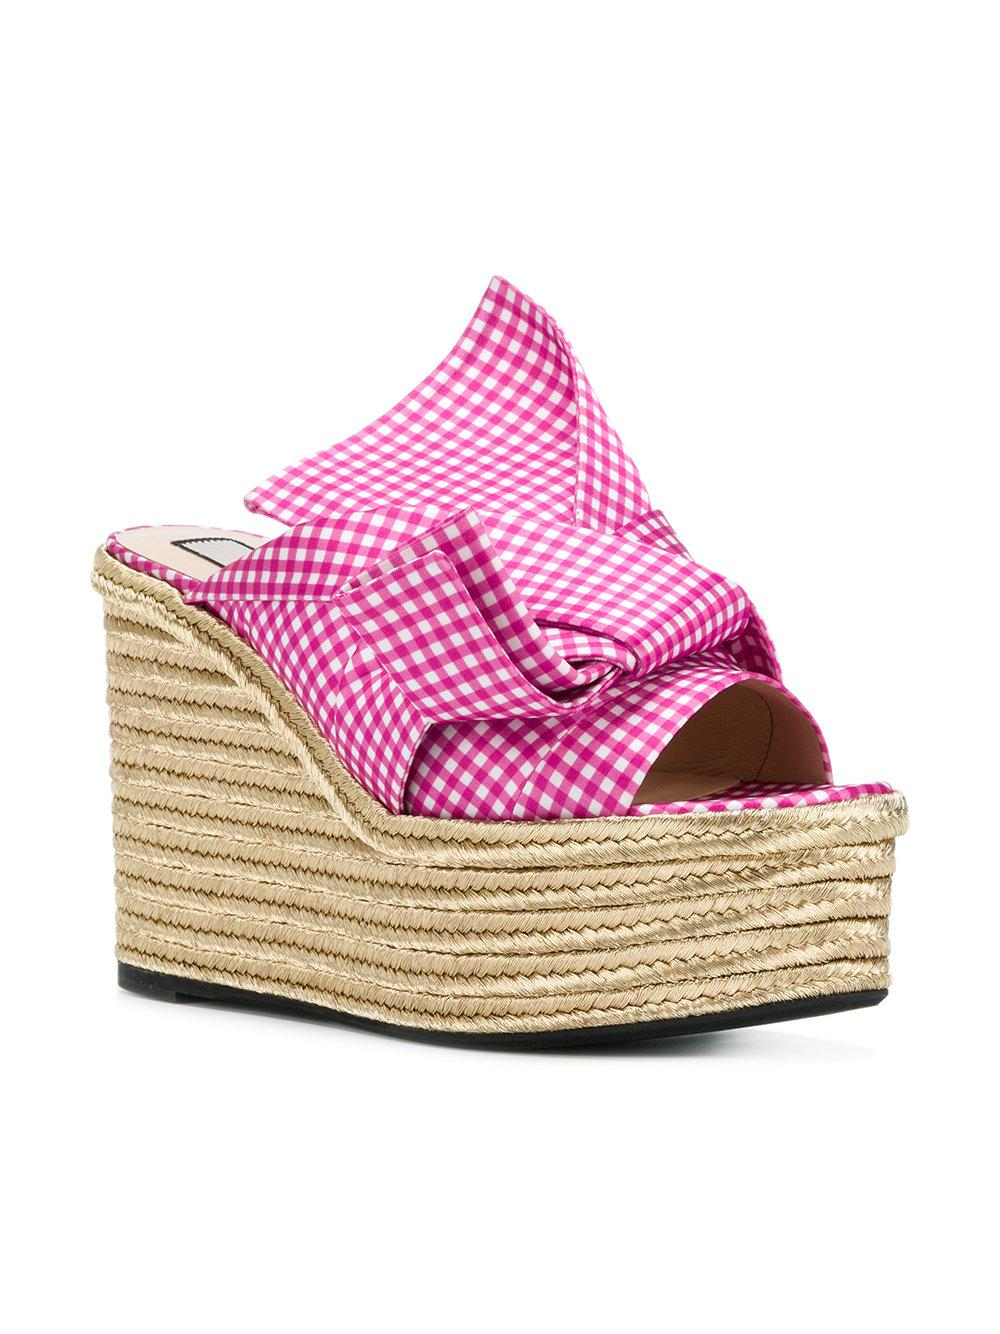 No21 Gingham knotted bow wedges